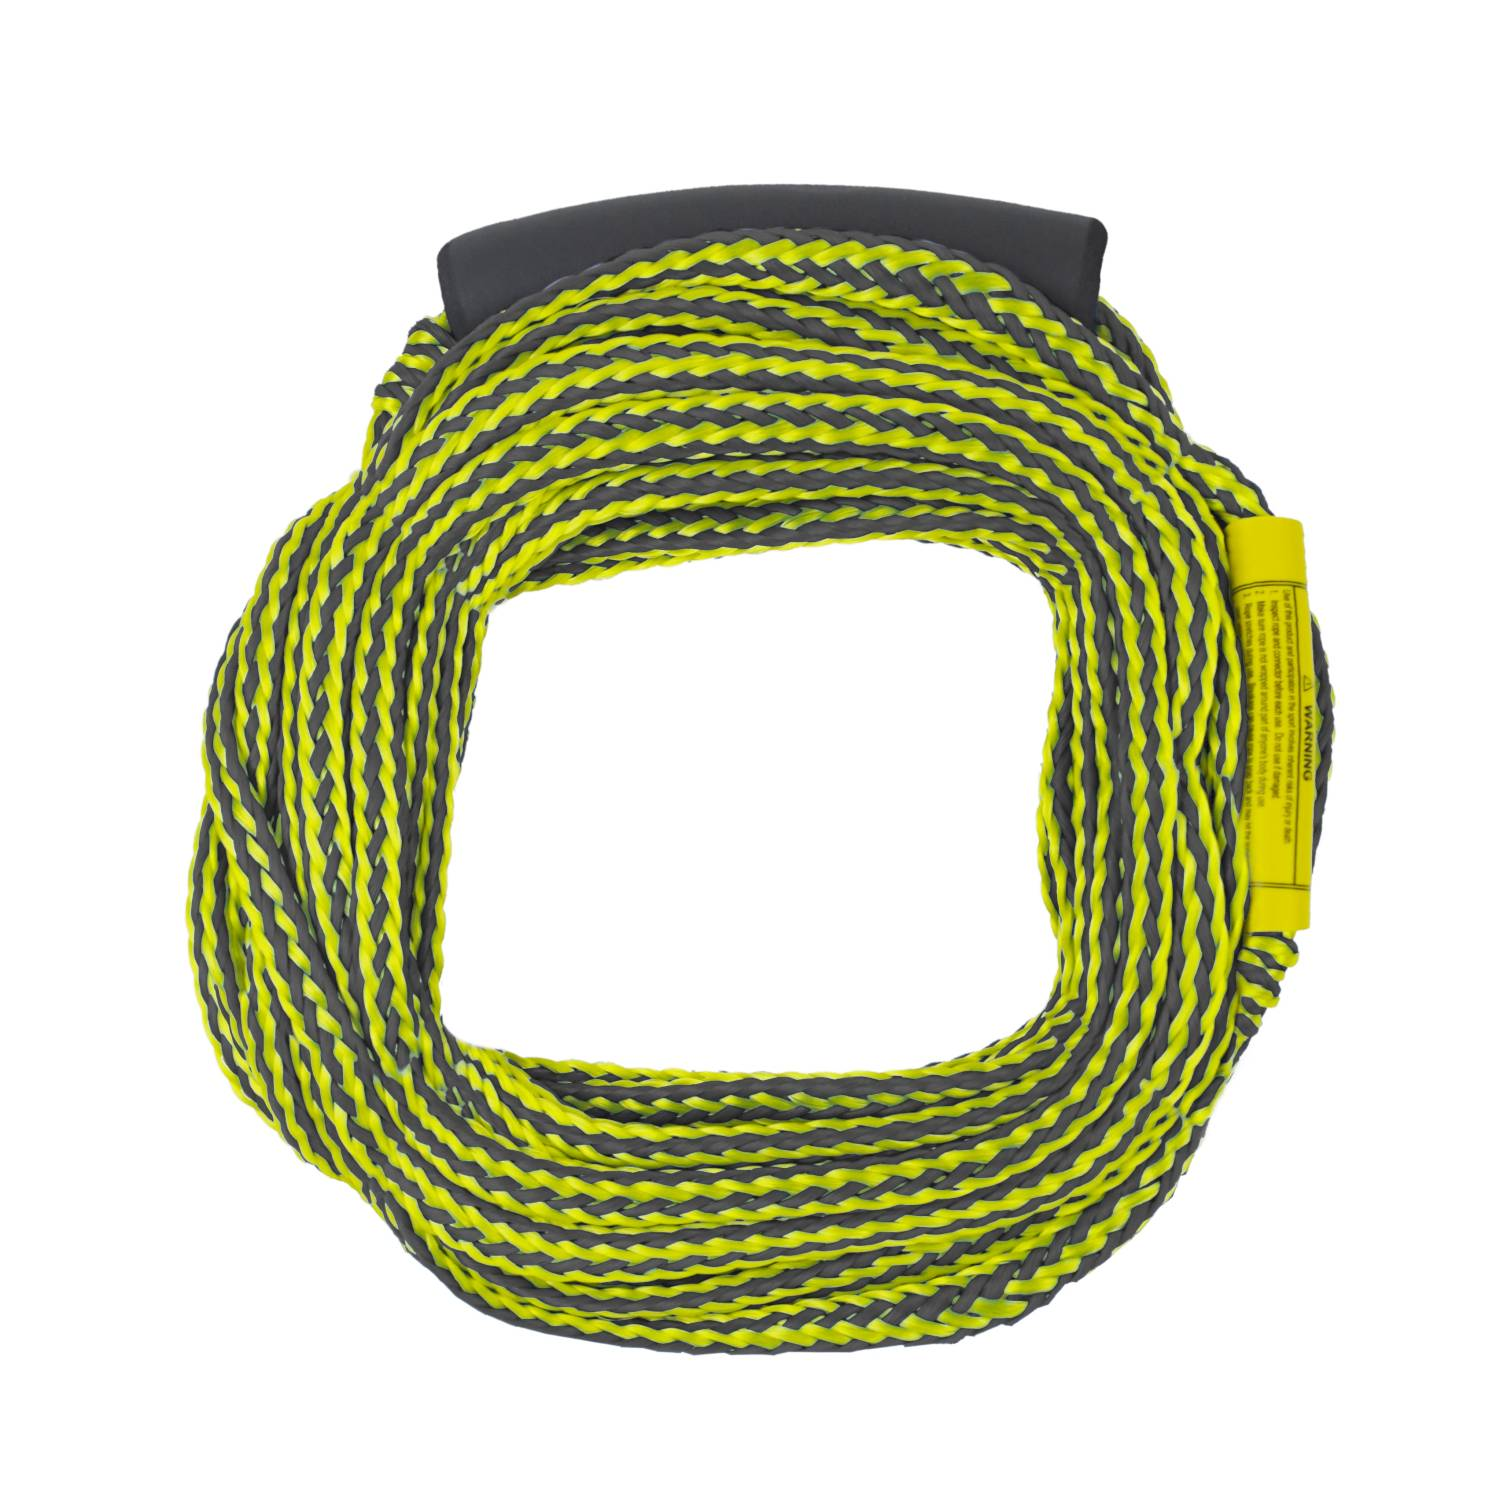 Waterski Tow Rope - Yellow & Black - 60'